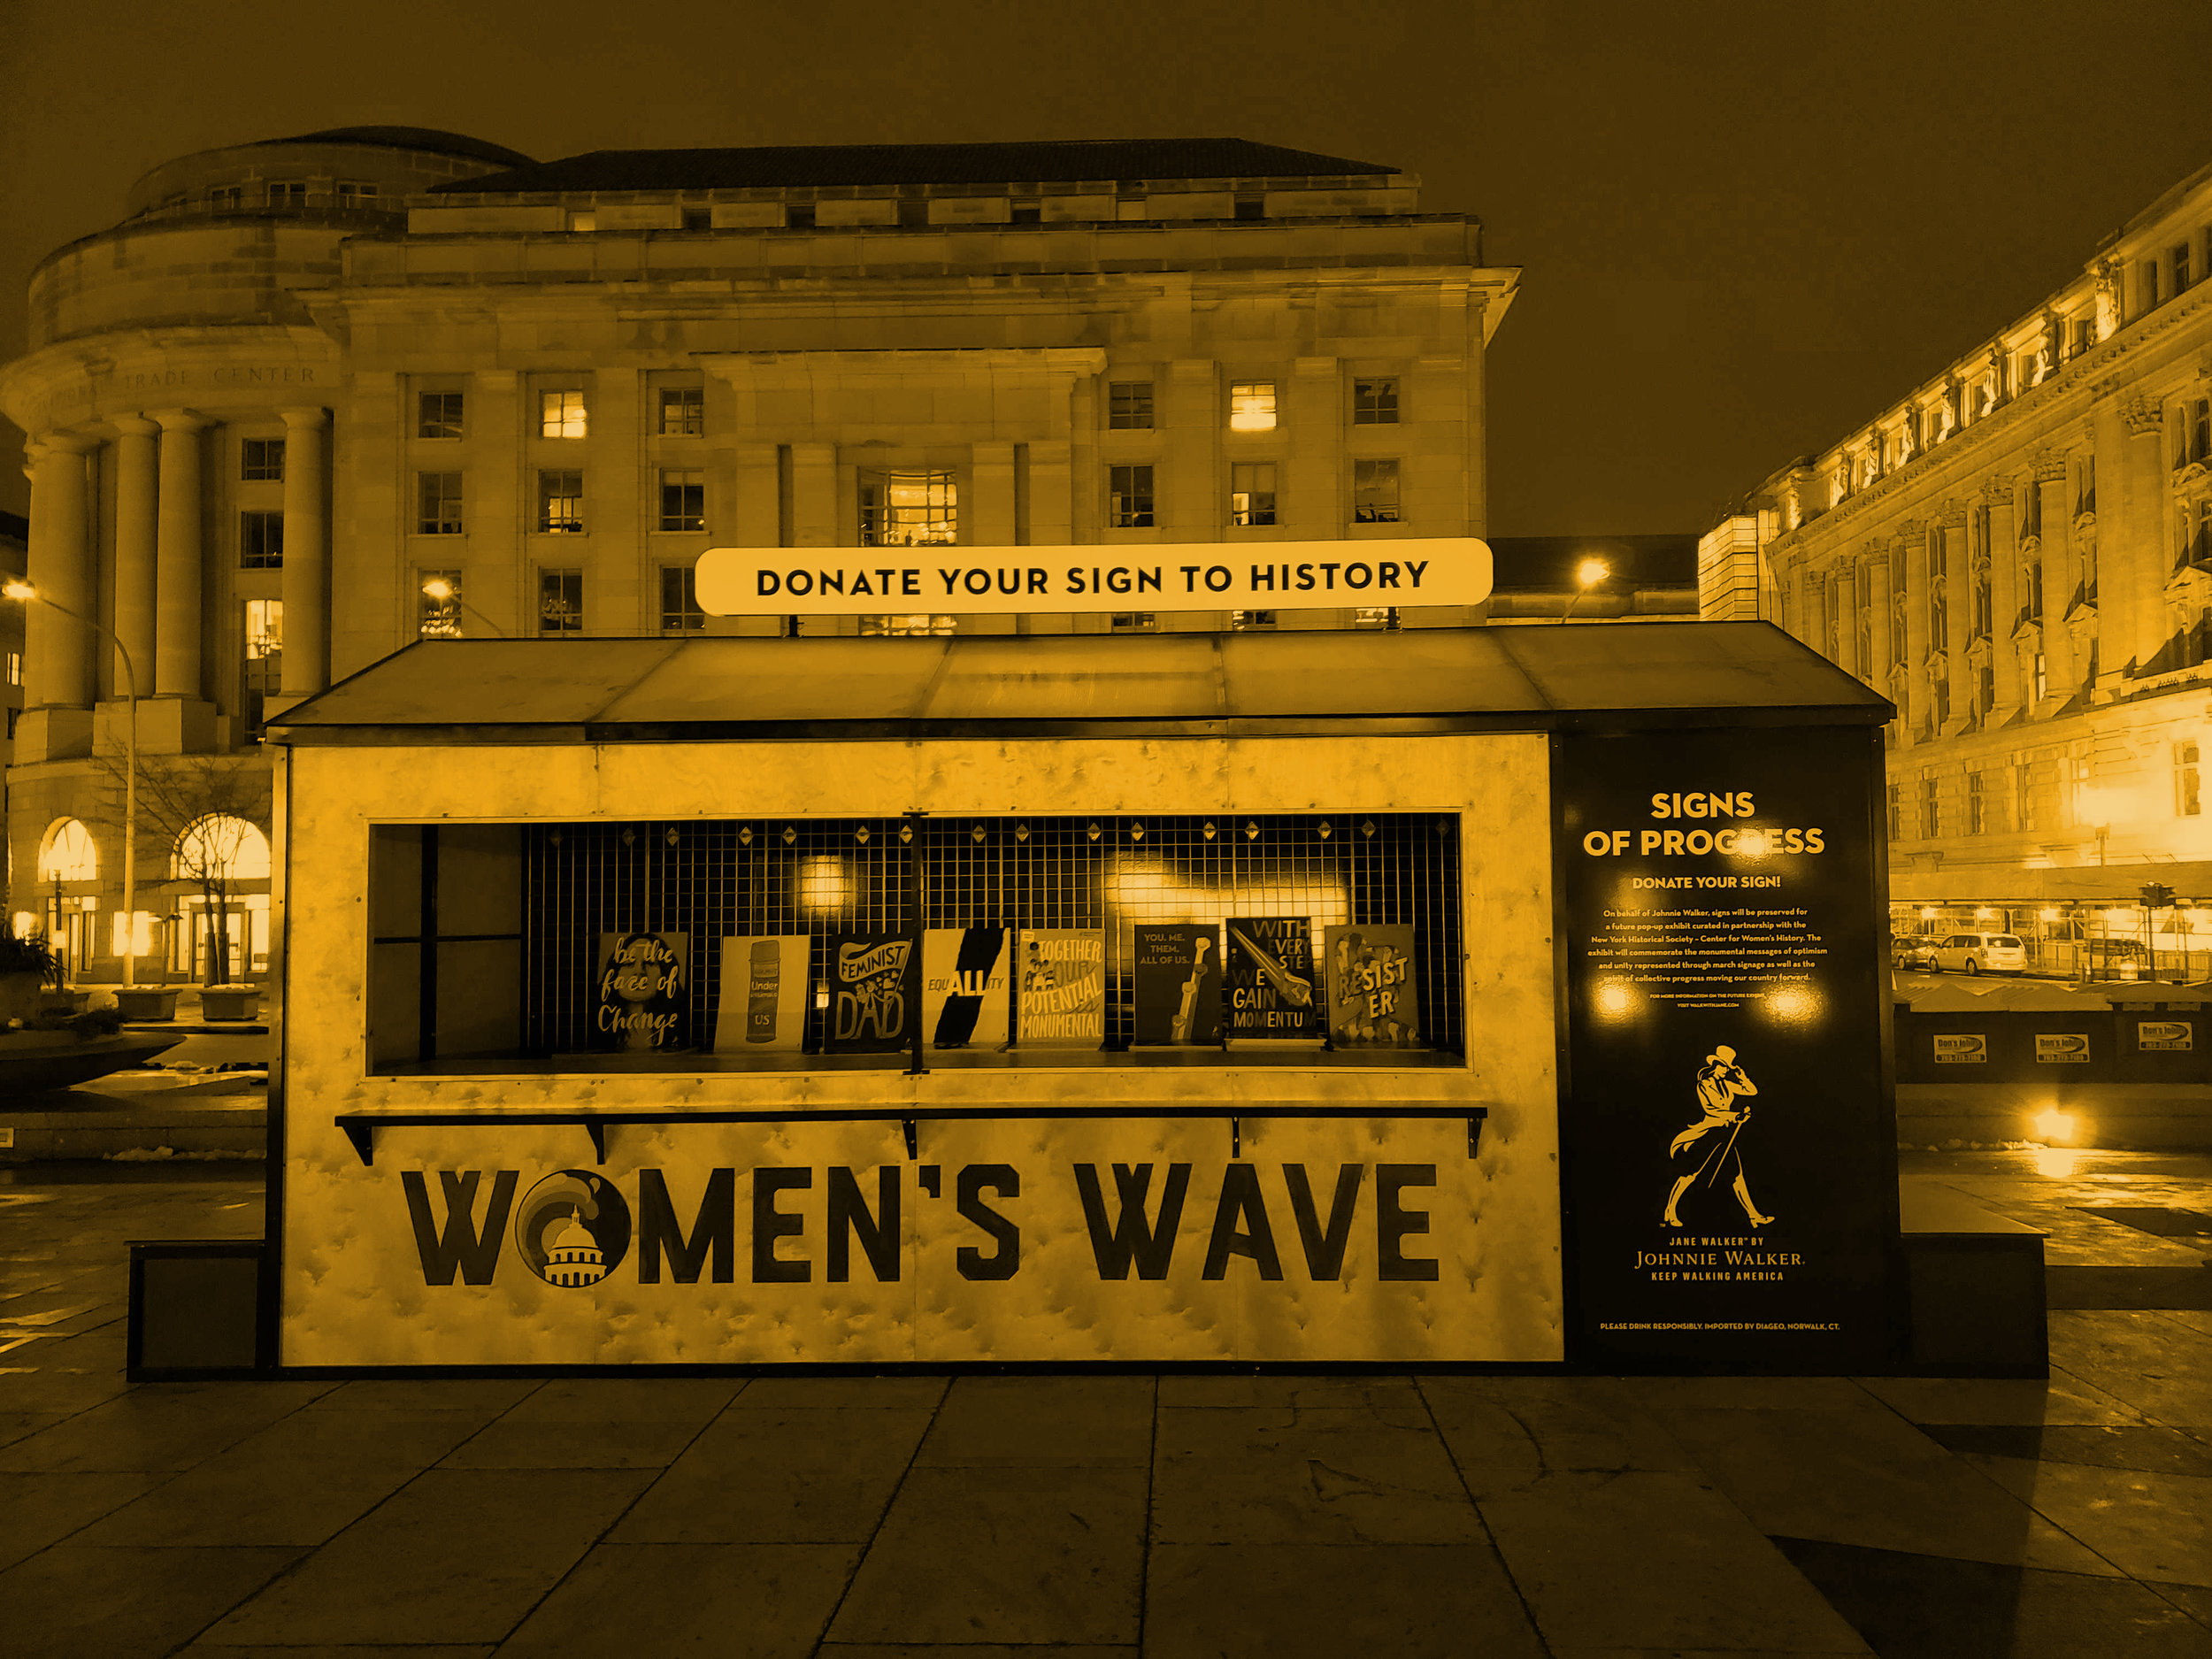 "2019 • JANE WALKER - Client: HUNTER PRCelebrating the many messages of optimism and empowerment, Jane Walker by Johnnie Walker brought the Signs of Progress Truck to the Women's March in Washington, D.C. The truck distributed free signs to marchers, designed by talented artists. At the end of the march in Freedom Plaza, attendees were able to donate their signs to history at the Jane Walker Preservation Station. Homemade signs were collected and cataloged for a future pop-up exhibit in partnership with the New York Historical Society - Center for Women's History. ""With every step, we all move forward."""